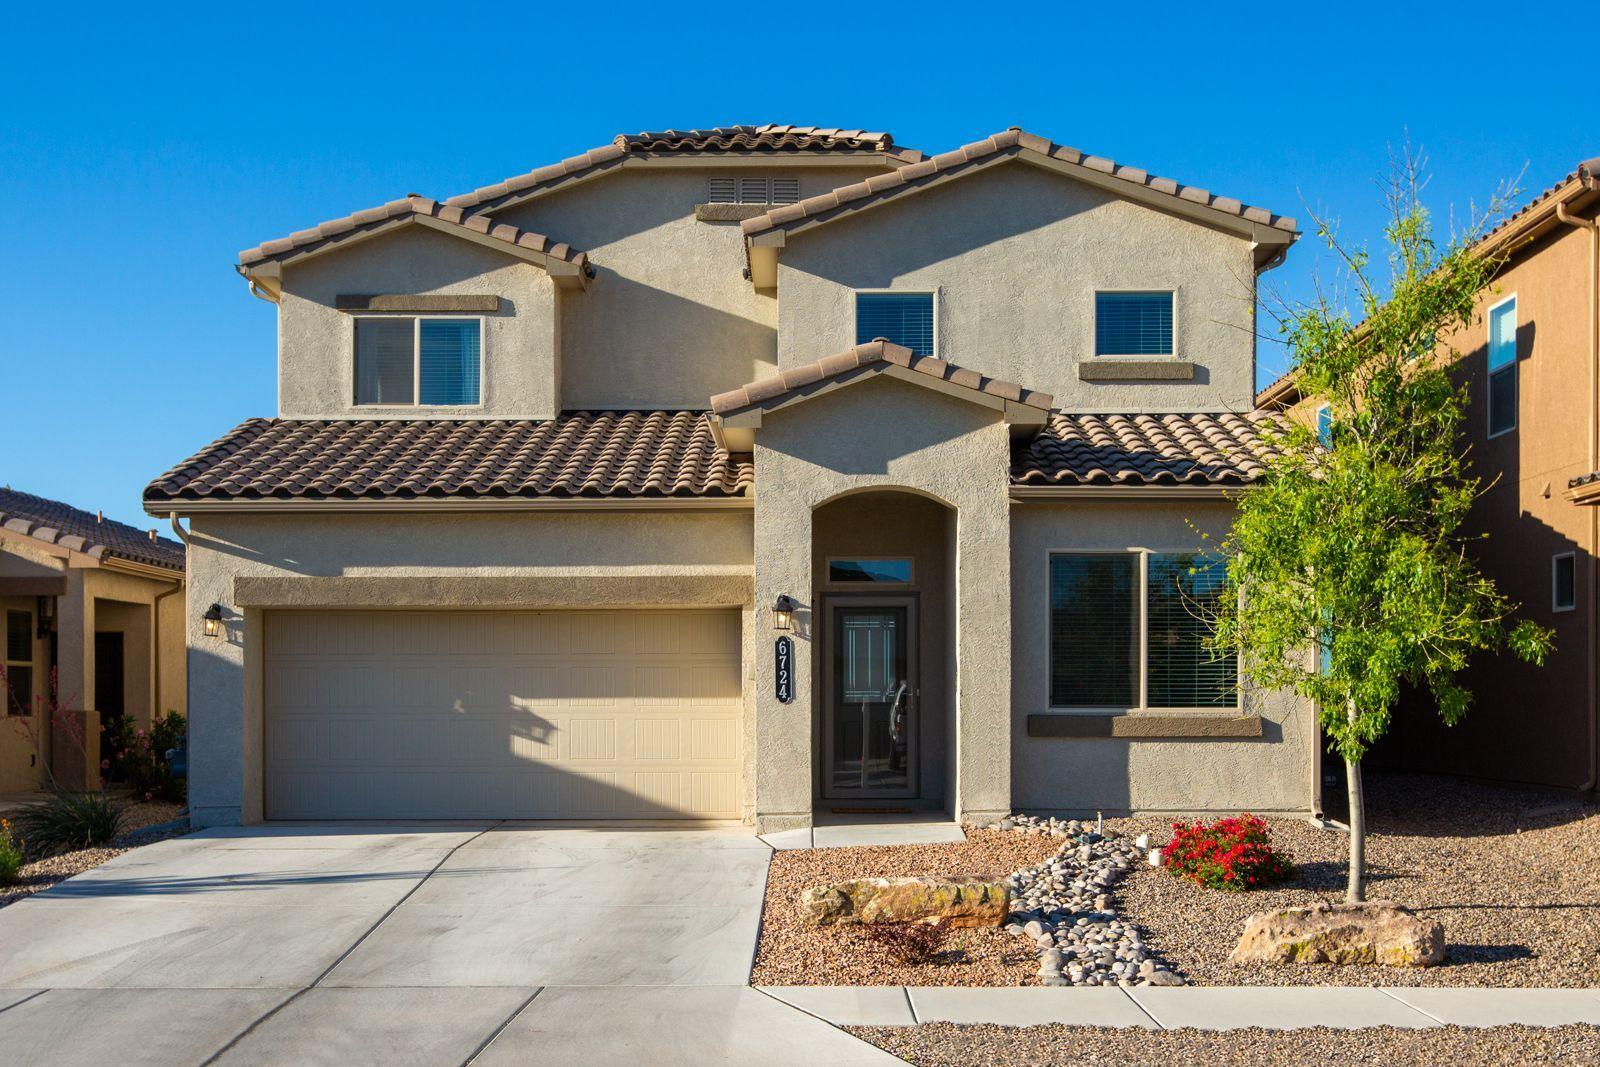 Immaculate move-in-ready DR Horton home located in the Trails community. Home features 2,674sg with 4 bedrooms, 3.5 bathrooms, an office and loft space! Great living area with soaring ceilings and a wall of sliding doors. Beautiful kitchen with upgraded espresso cabinetry, granite countertops, custom backsplash, stainless steel gas range, microwave, dishwasher, pantry, center island with seating space. Dining right off of the kitchen. Master suite with a sitting area and private bath. Bath hosts dual sinks, a large walk-in shower and a walk-in closet. Upstairs find a huge loft perfect for a kids area! Outside enjoy dinner under the covered patio watching those Sandia sunsets.